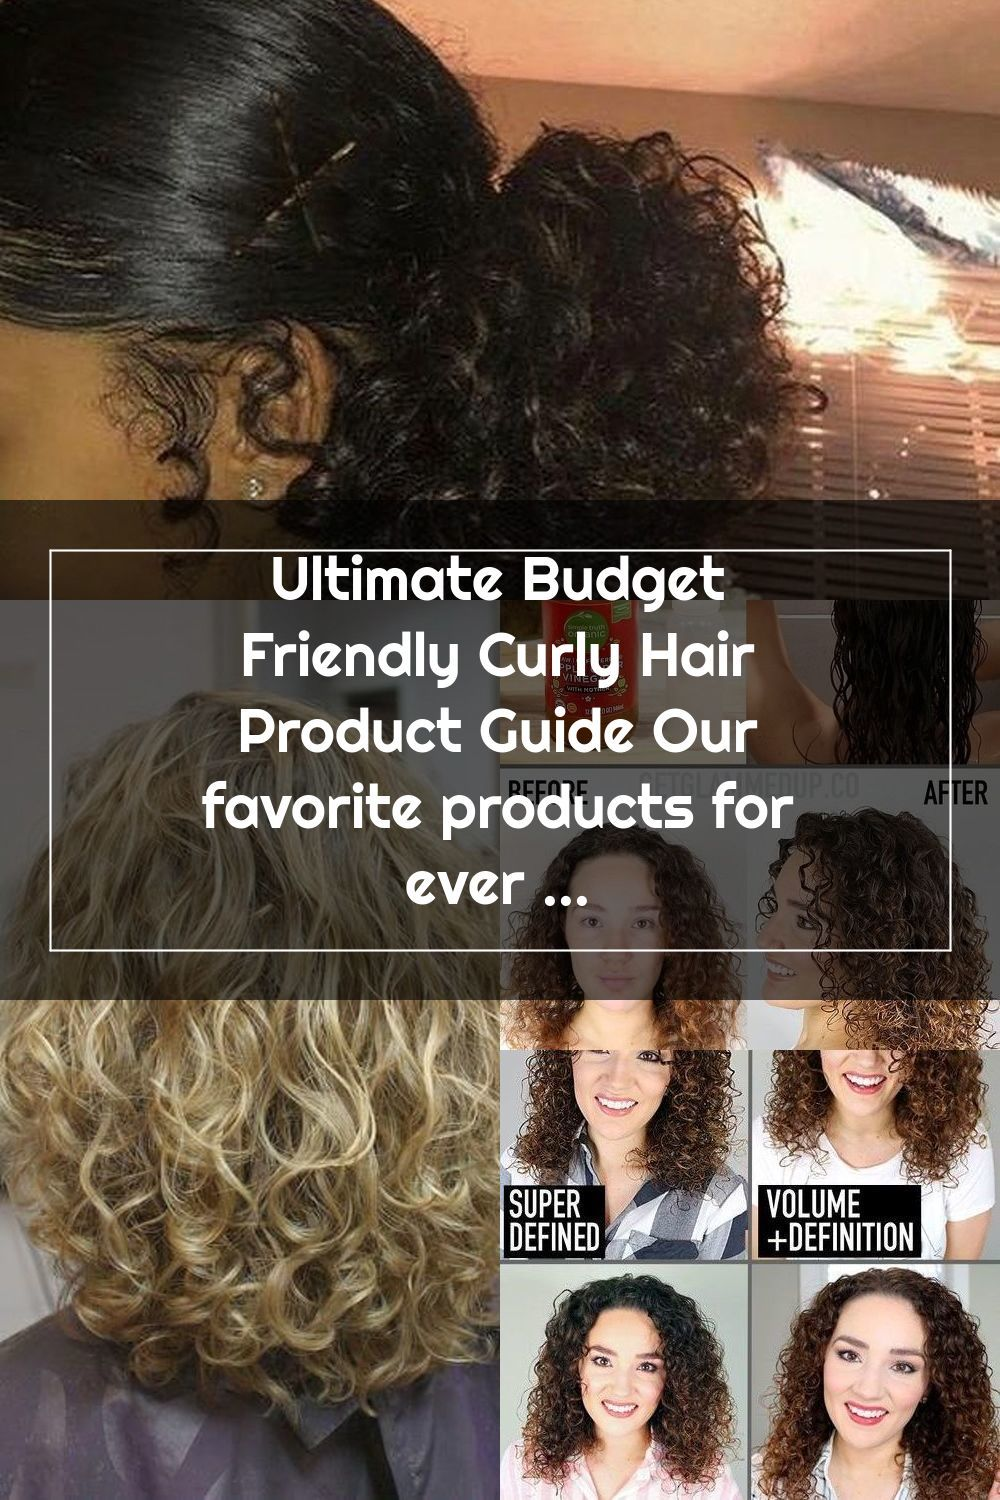 Ultimate Budget Friendly Curly Hair Product Guide Our favorite products for every step of your budget curl care routine! What products do you swear by?#naturalhair#curlyhair#budget #naturalcurlyhair